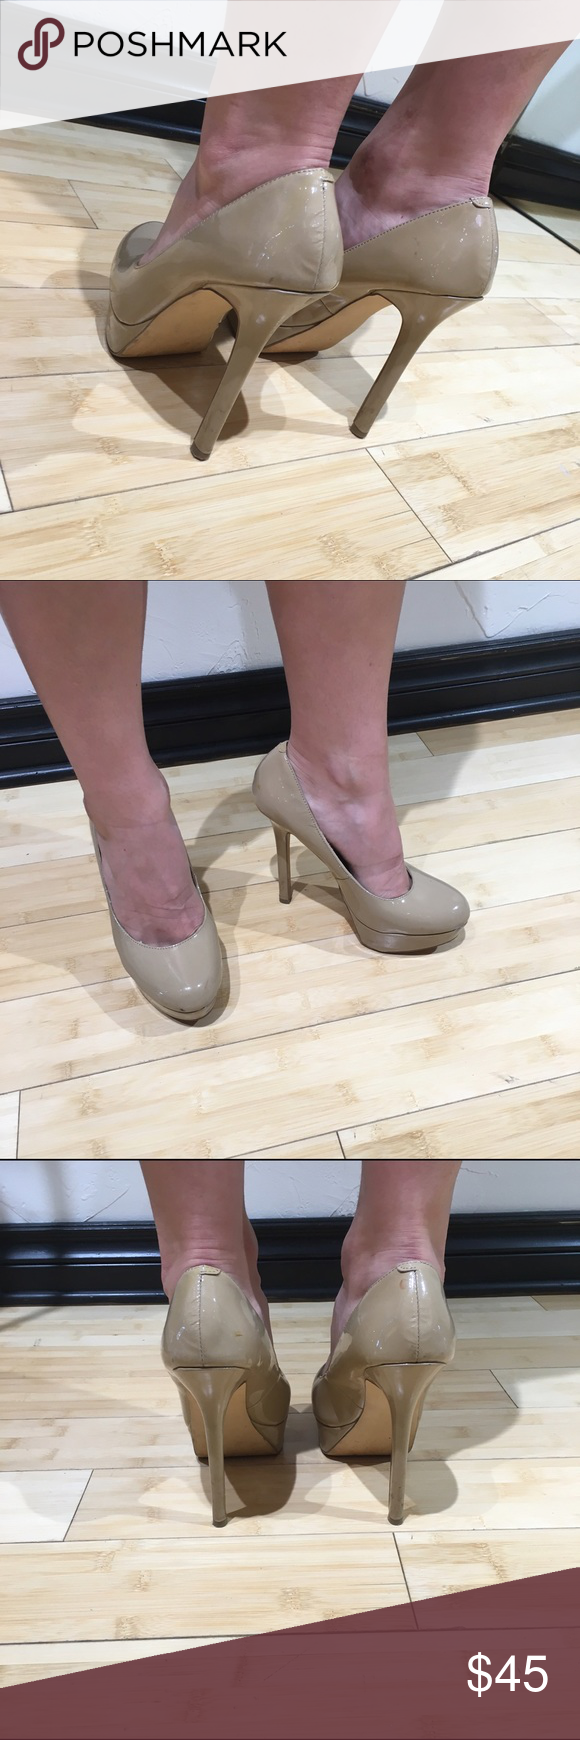 """Nude closed toe pumps Steve Madden """"Bevv"""" These nude patent leather pumps by Steve Madden are one of the most versatile and classic options you can have in your closet! Size 8. """"Bevv"""" 5 inches with 1 1/4 inch platform. Steve Madden Shoes Heels"""